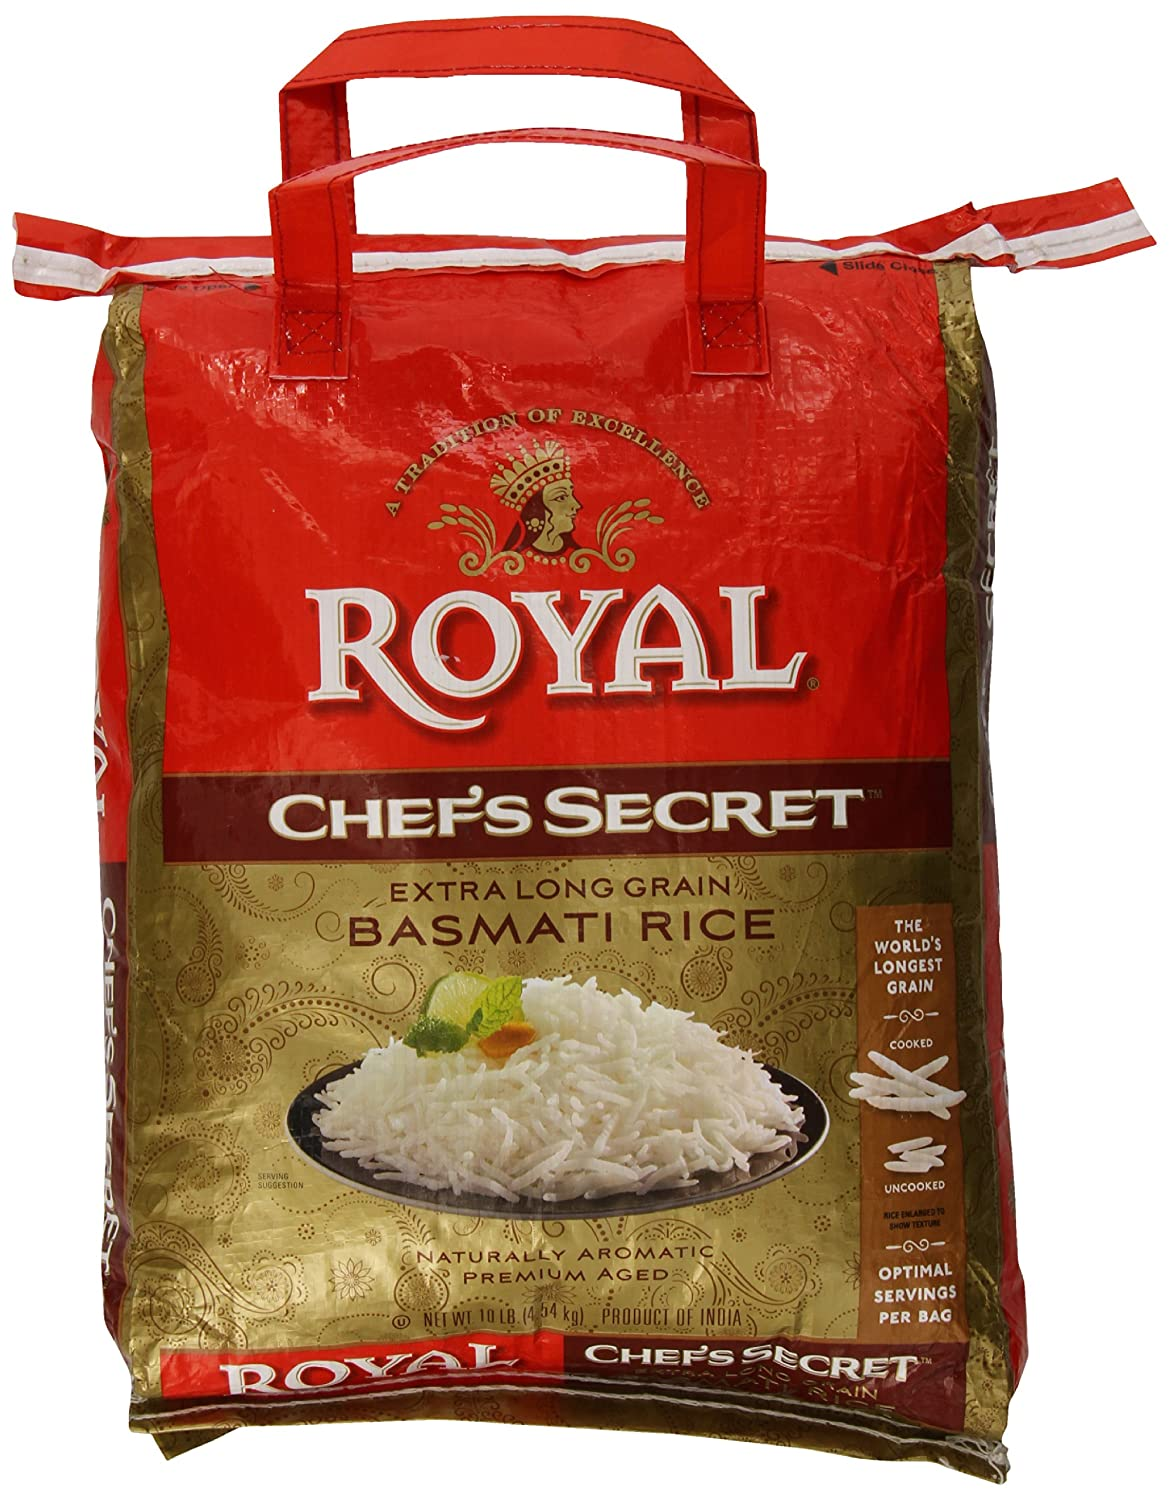 Royal Chef's Secret Extra Long Grain Basmati Rice, 10 Pound